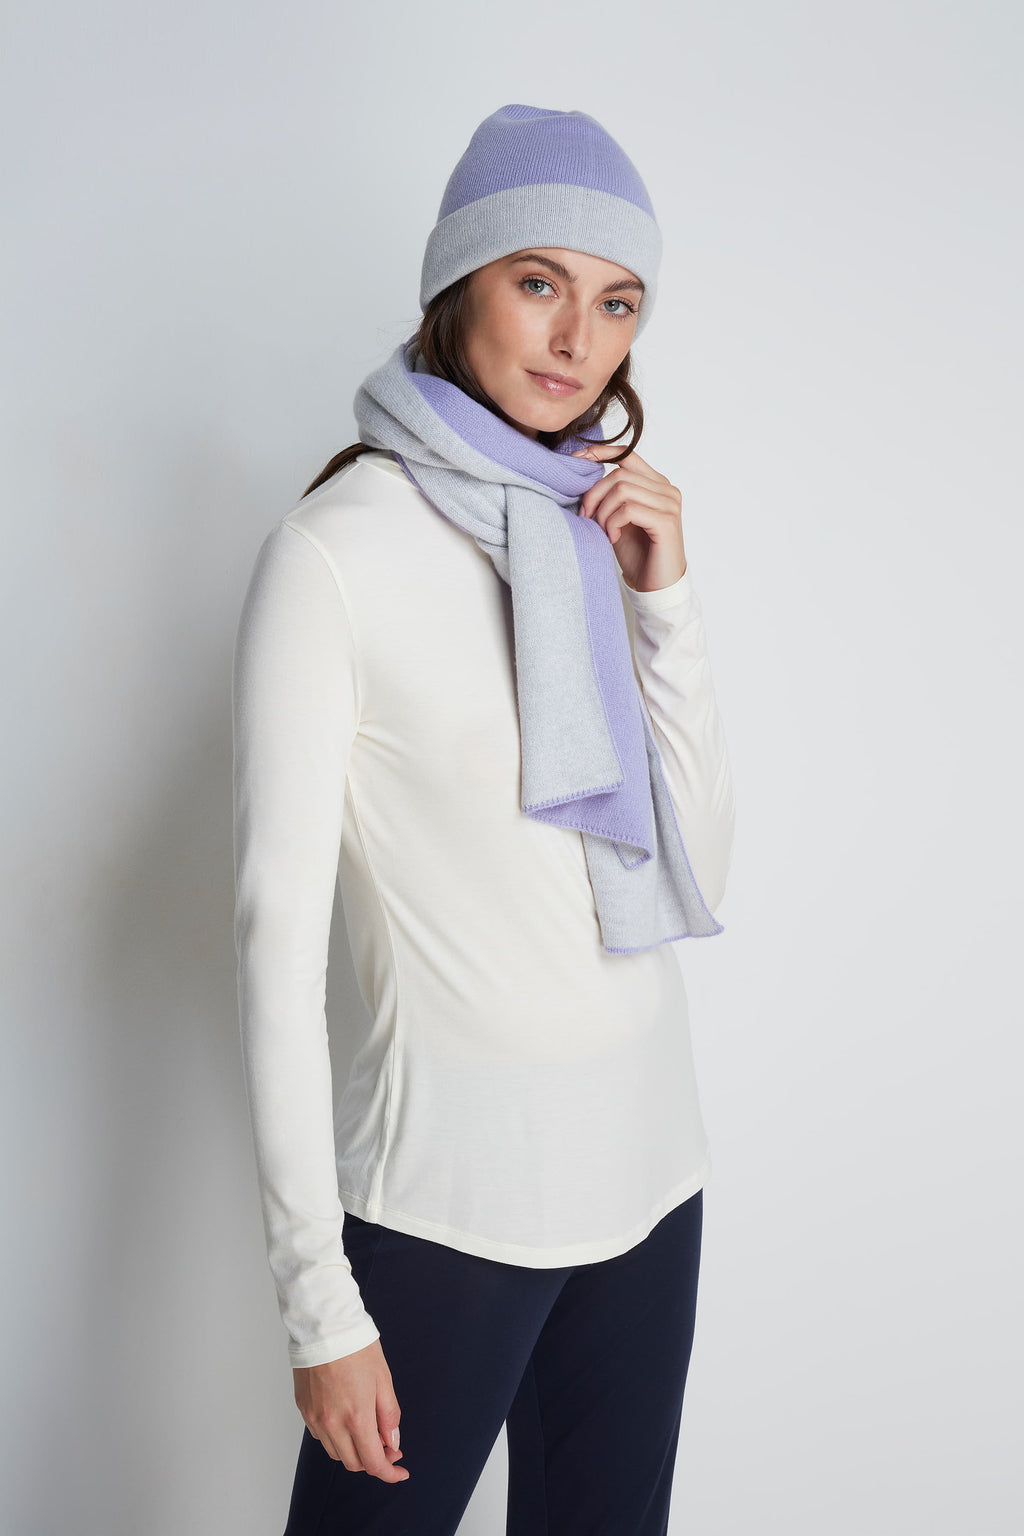 Reversible Scottish Cashmere Hat by Lavender Hill Clothing - discover our Cashmere Accessories